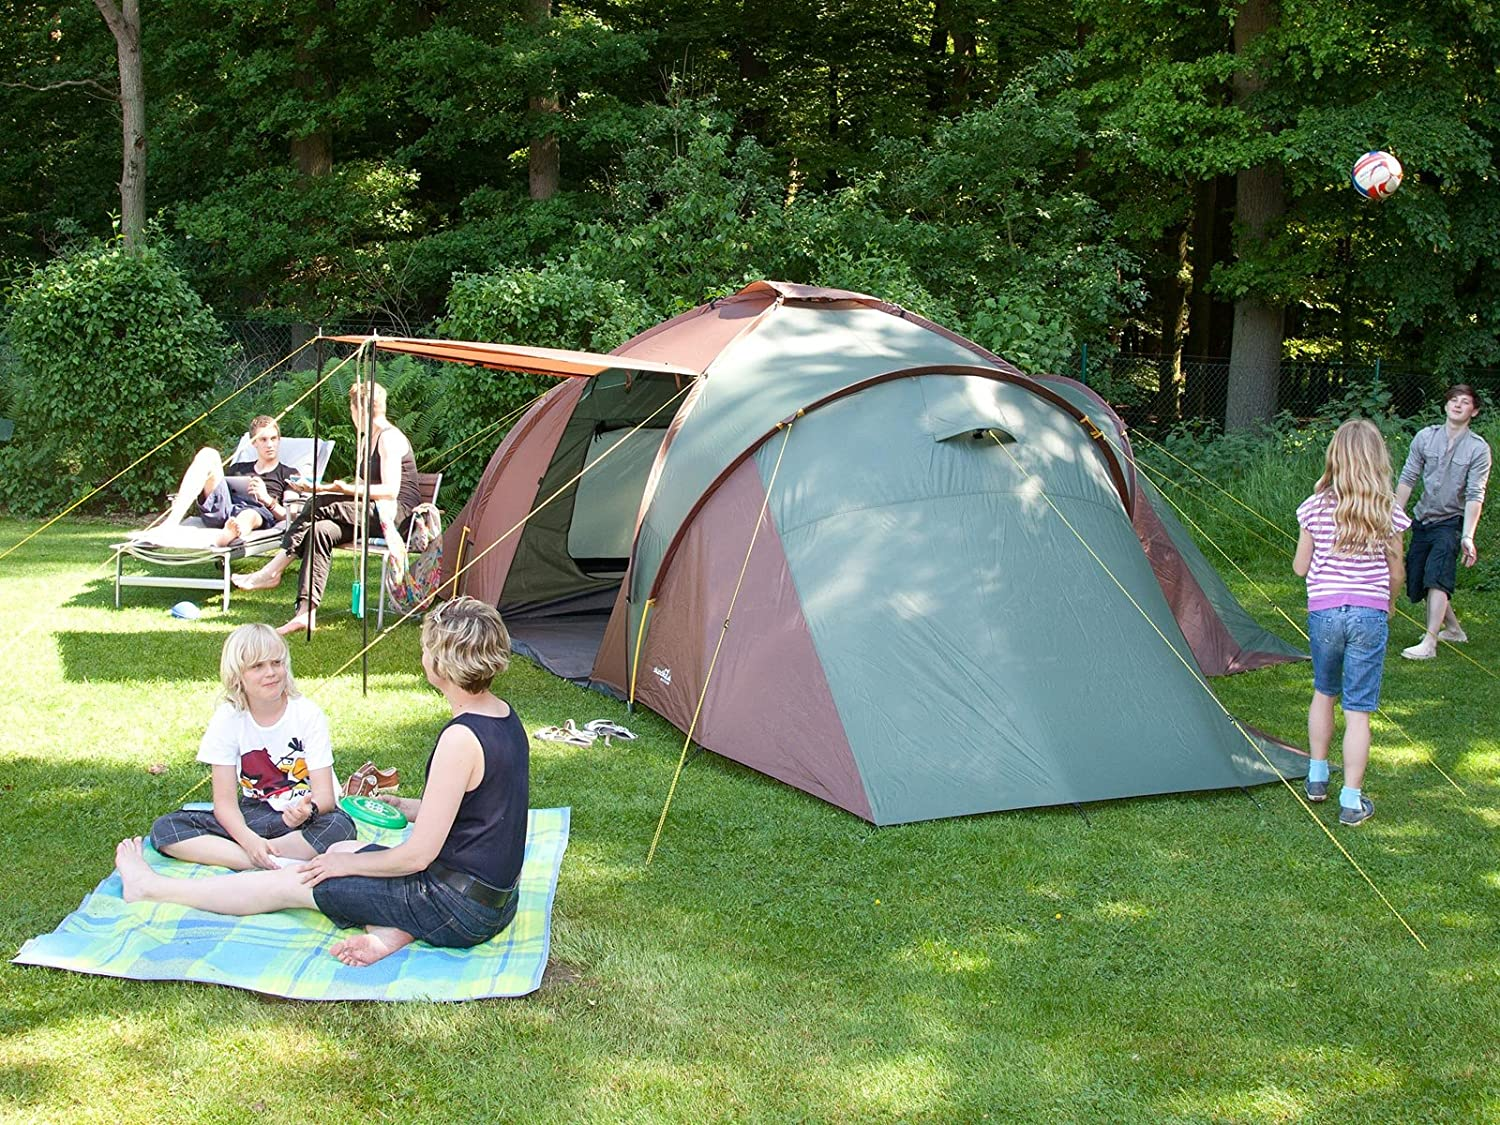 skandika daytona xxl family dome tent 6 9 person green with